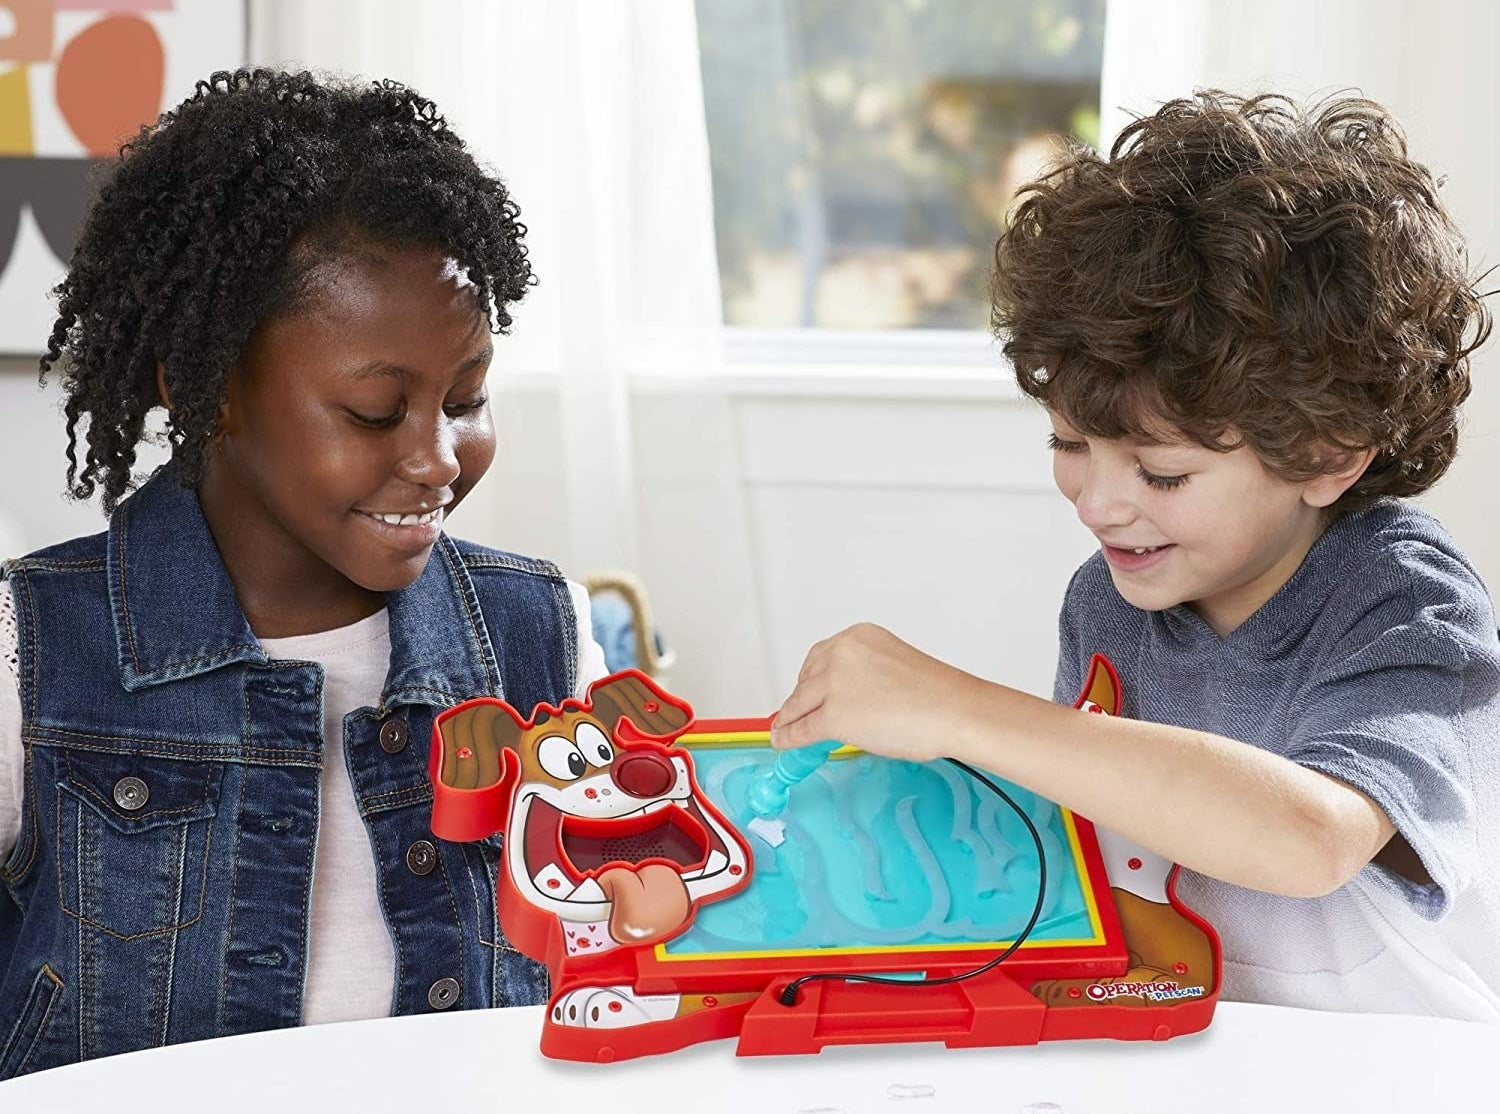 Two child models playing with dog-shaped Operation game